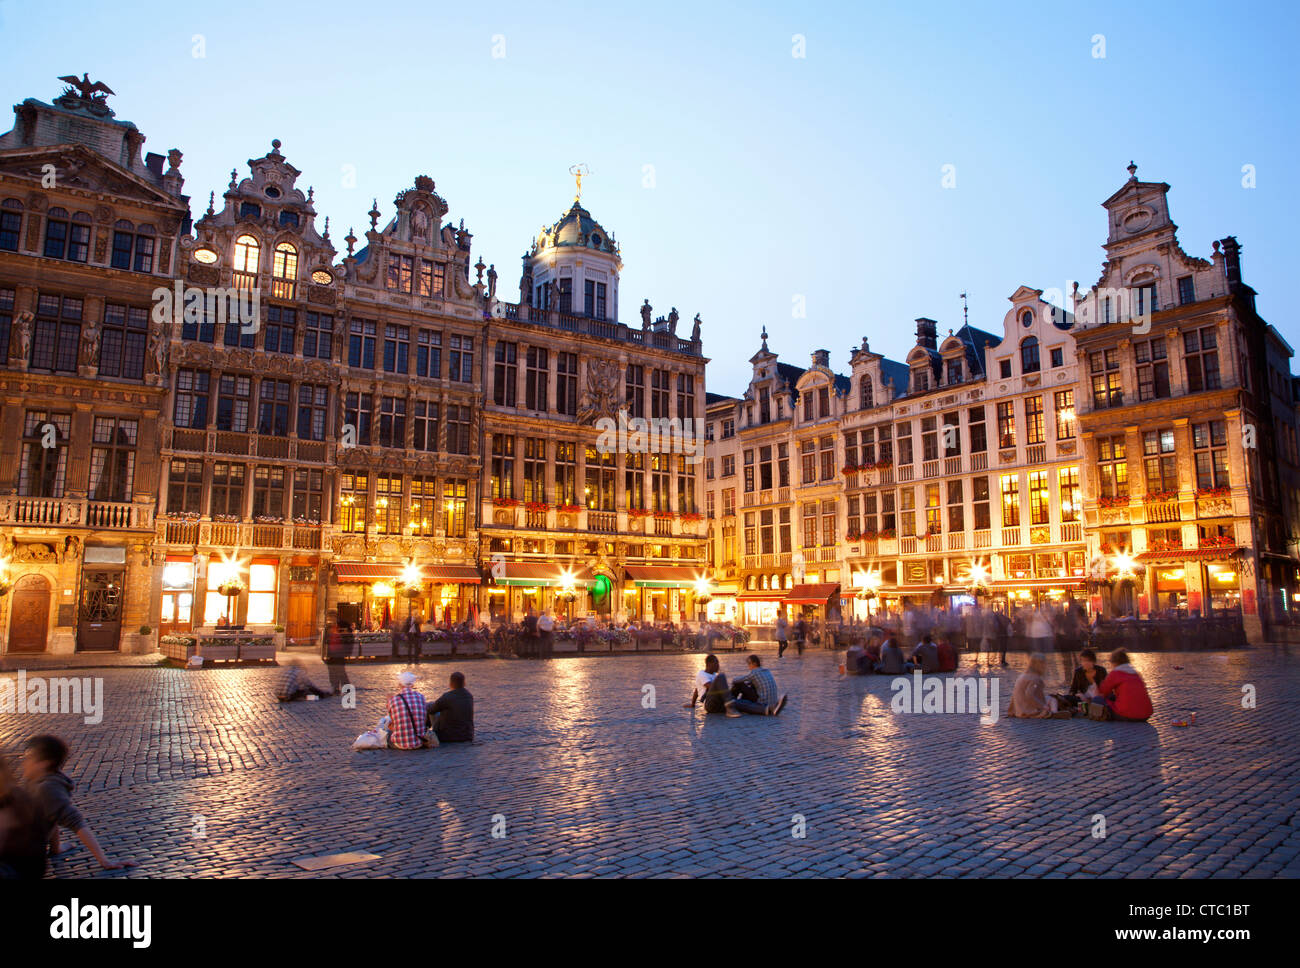 Brussels - The main square and Town hall in evening. Grote Markt. Stock Photo